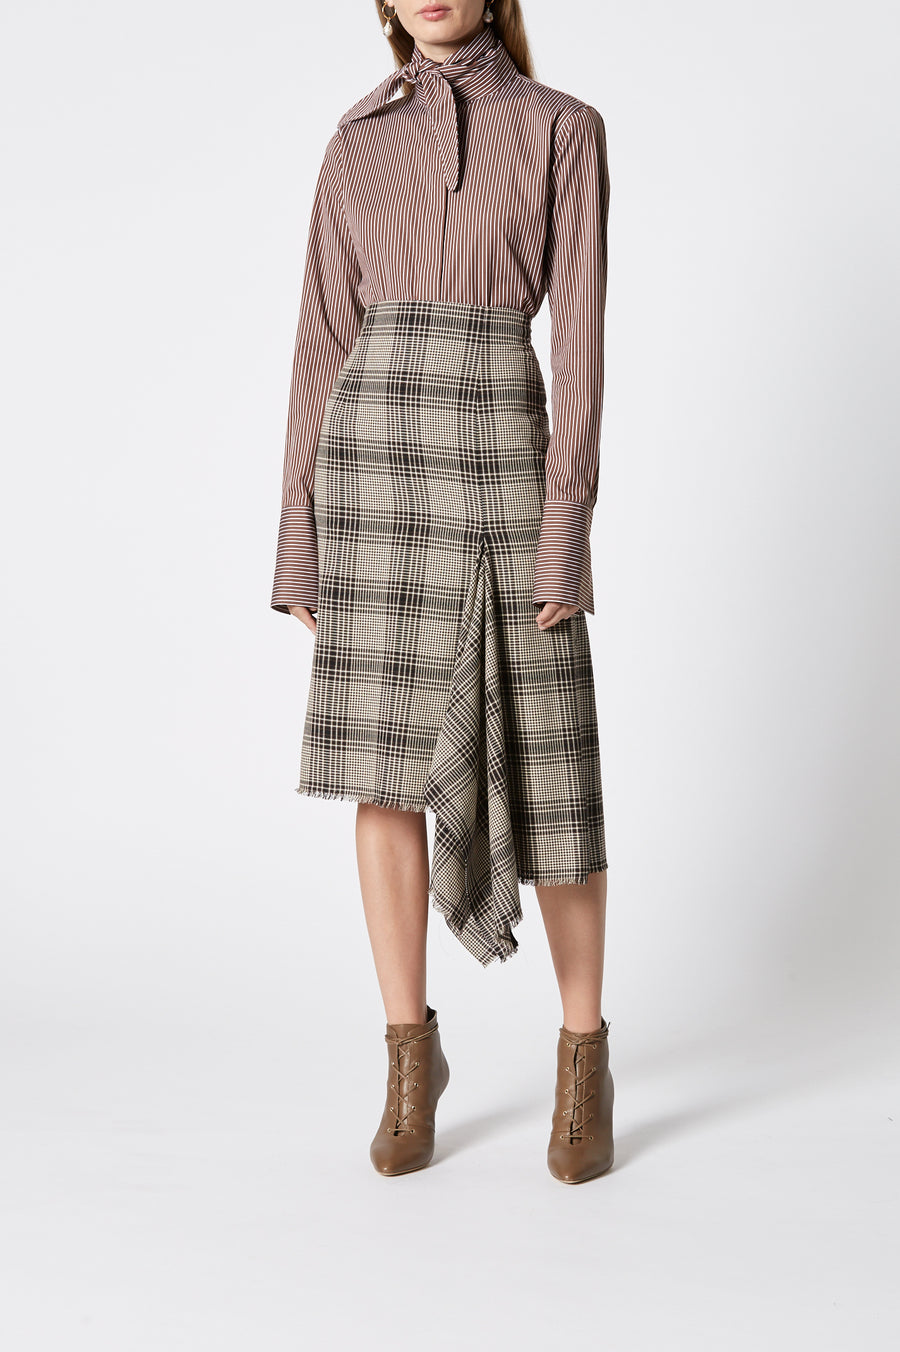 Plaid Draped Hem Skirt, asymmetrically cut in a neat A-line, draped insert, falls just past knee, high waisted, color coffee